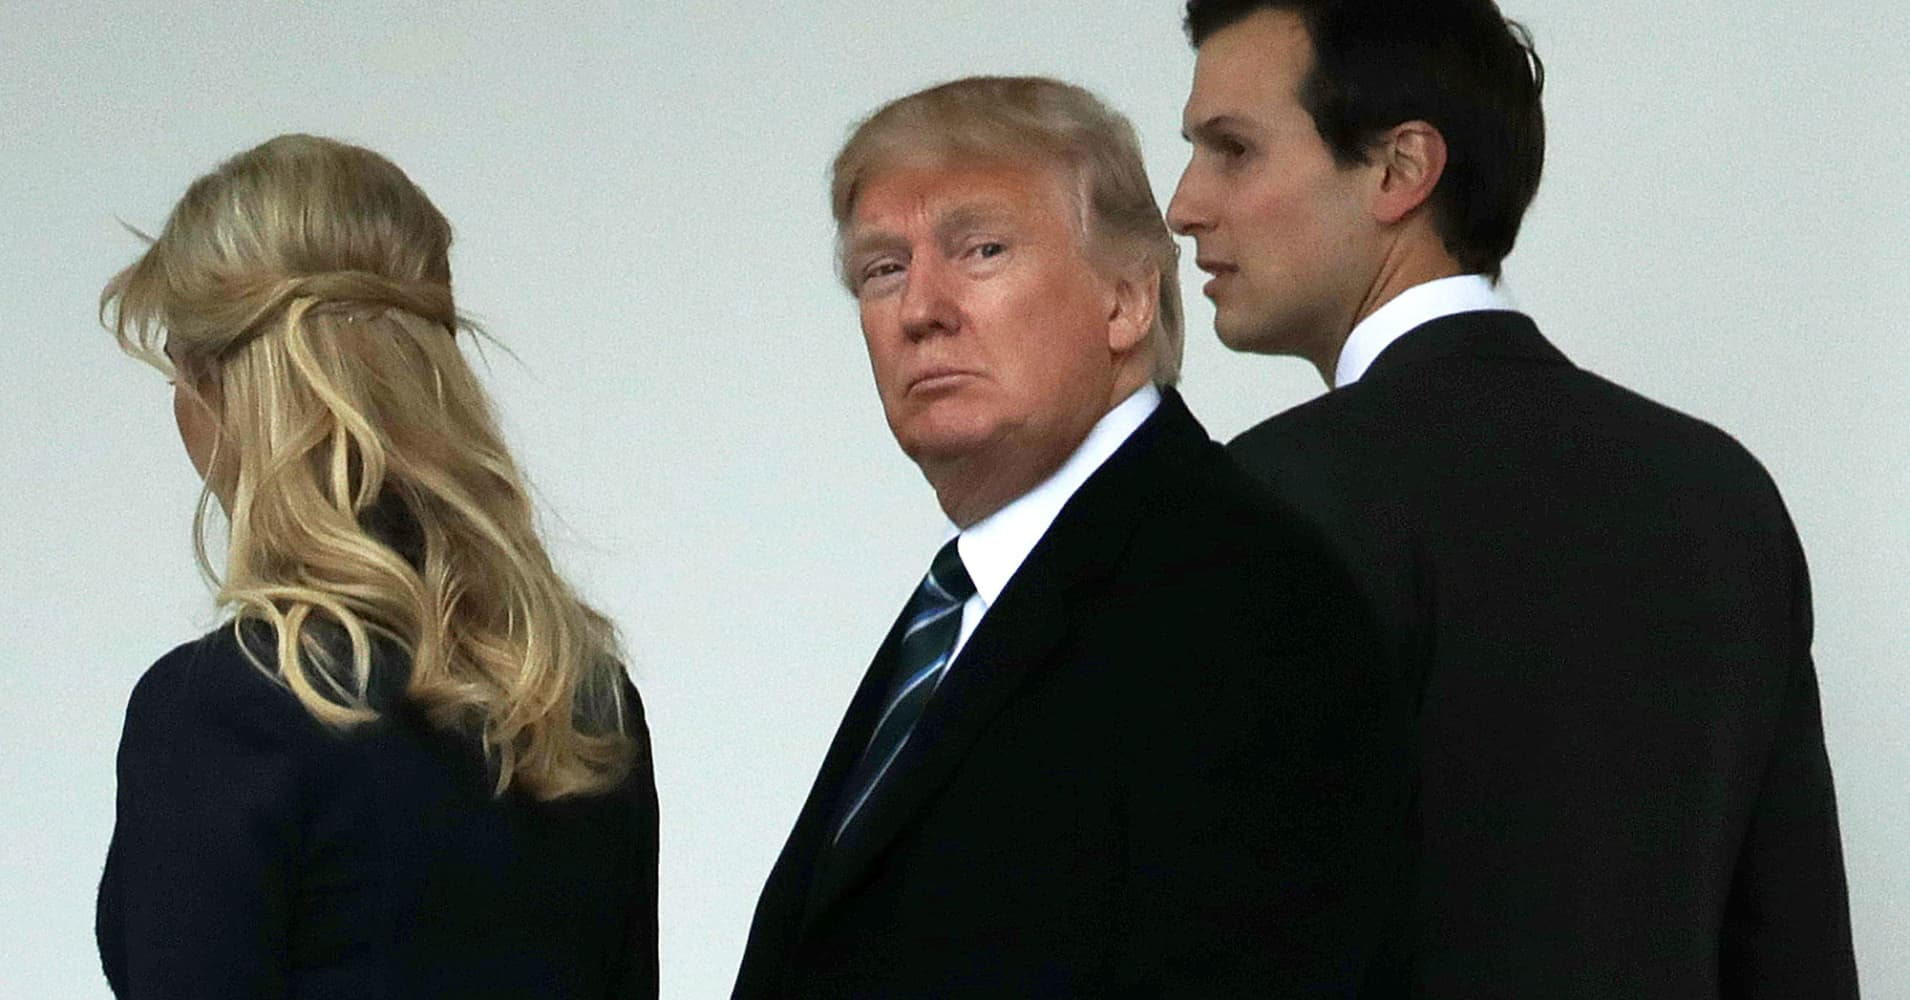 Ivanka Trump and Jared Kushner have more power at the White House than first thought